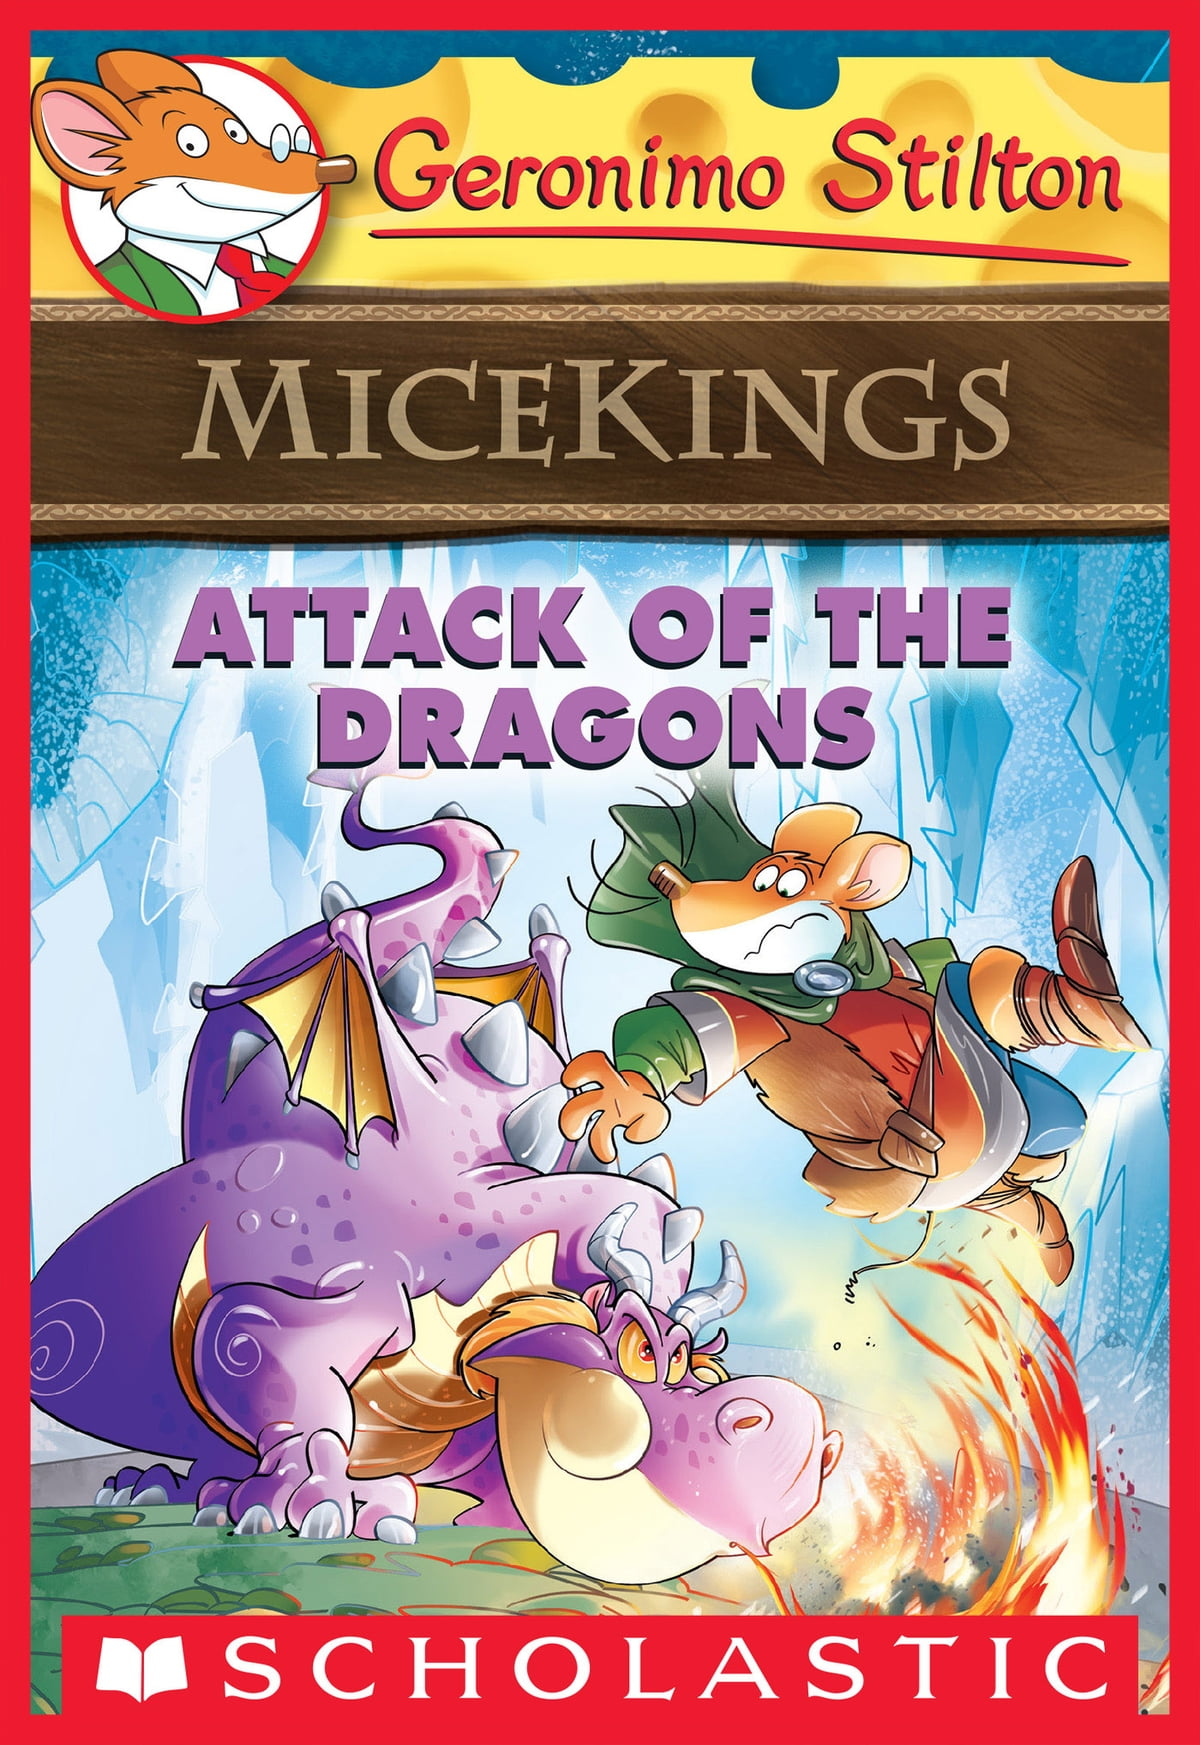 Comprar Libros Geronimo Stilton Attack Of The Dragons Geronimo Stilton Micekings 1 Ebook By Geronimo Stilton Rakuten Kobo